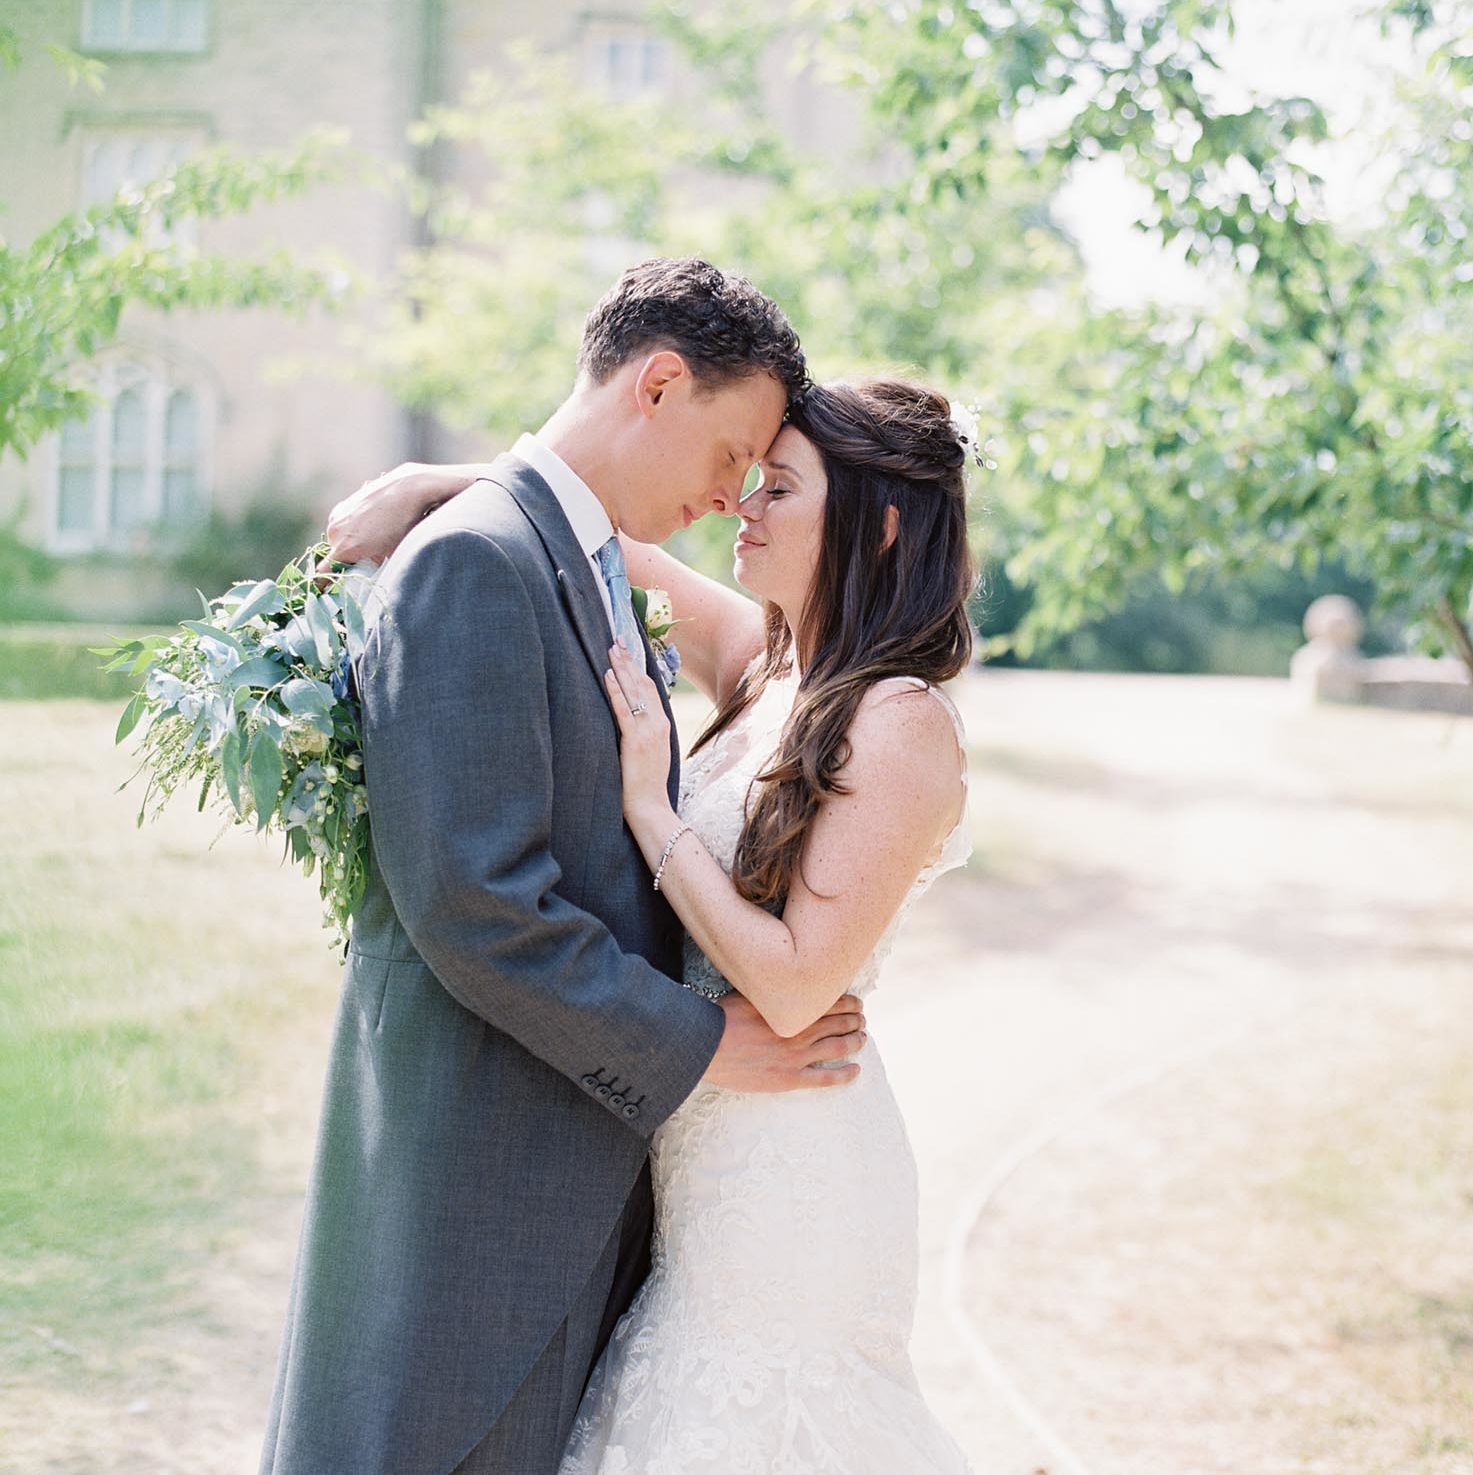 Bride and groom in elegant, timeless wedding photography at Chiddingstone Castle wedding